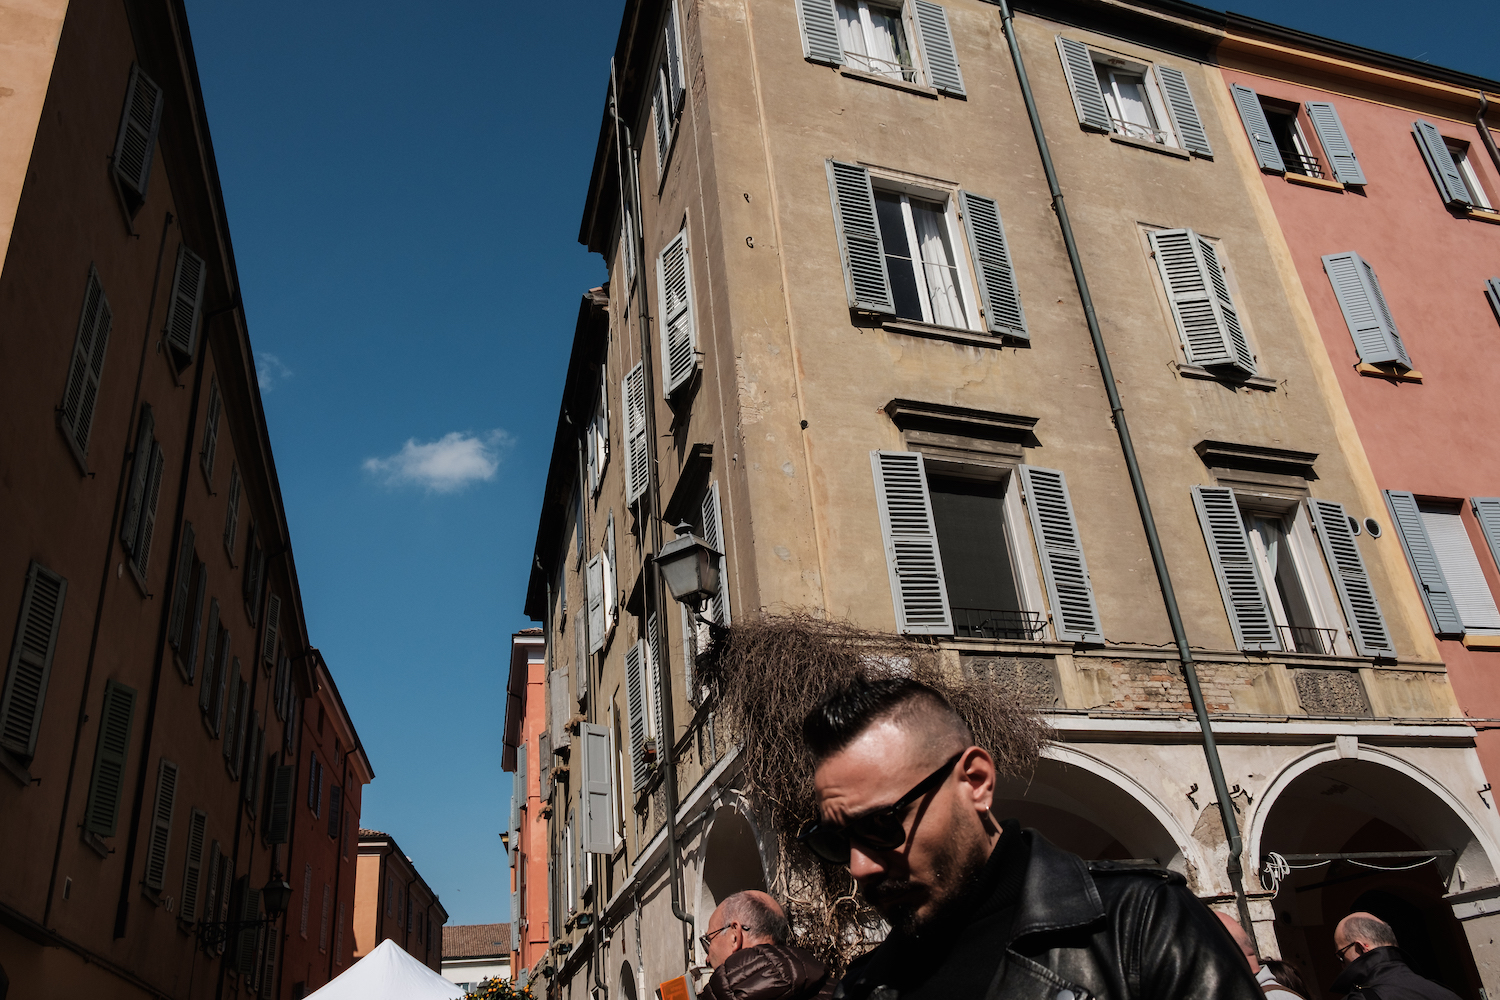 One Day in Modena - Travel and Street Photography by Ben Holbrook from DriftwoodJournals.com-5607